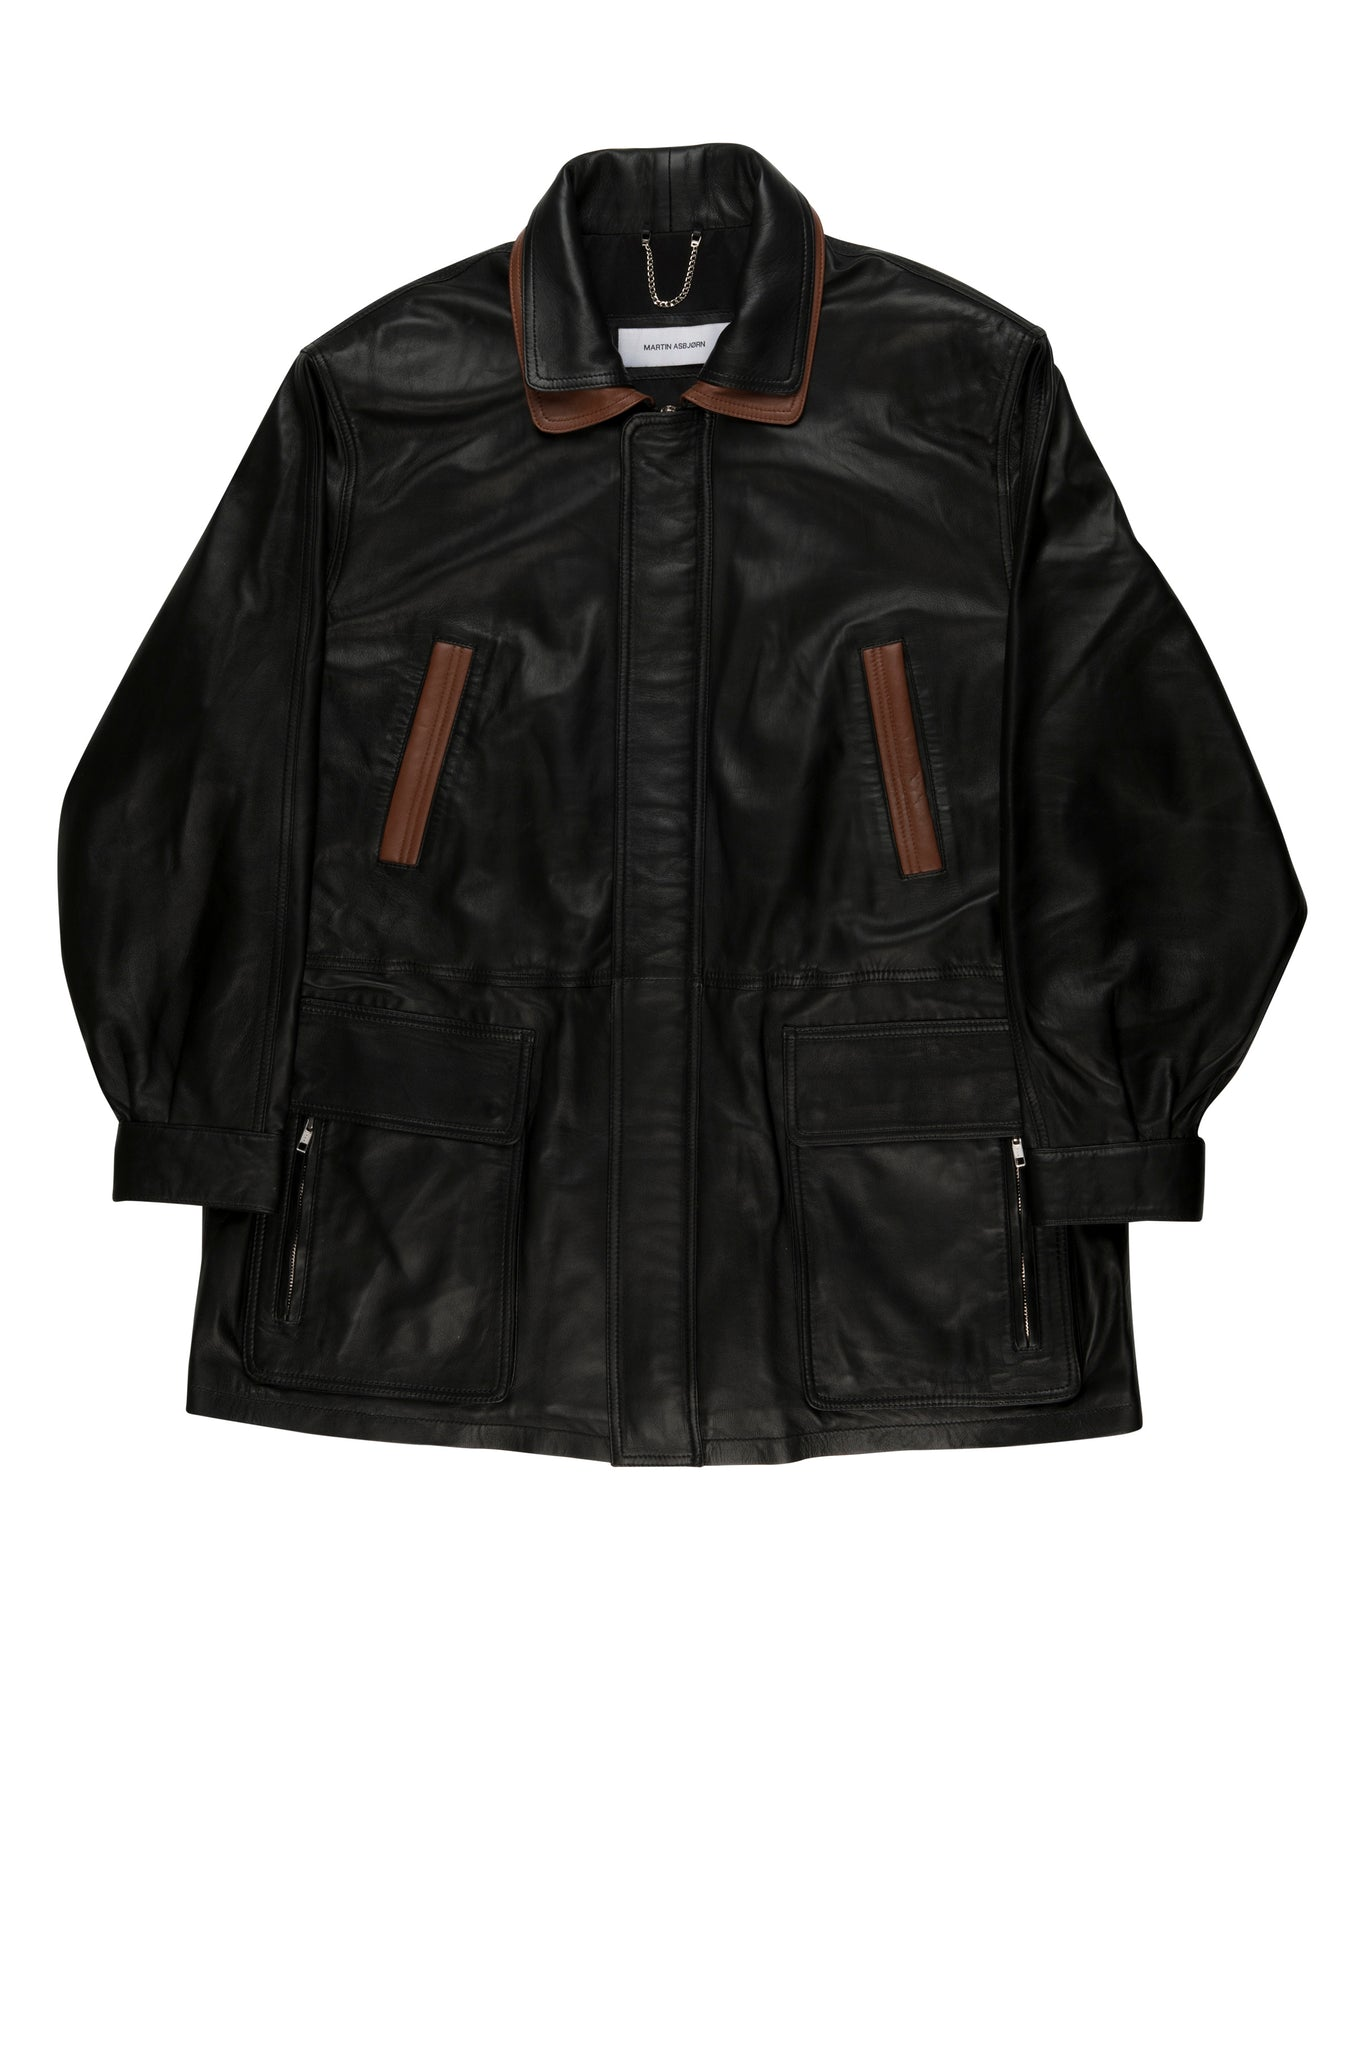 Martin Asbjørn Oversized Dad jacket in black nappa leather for men